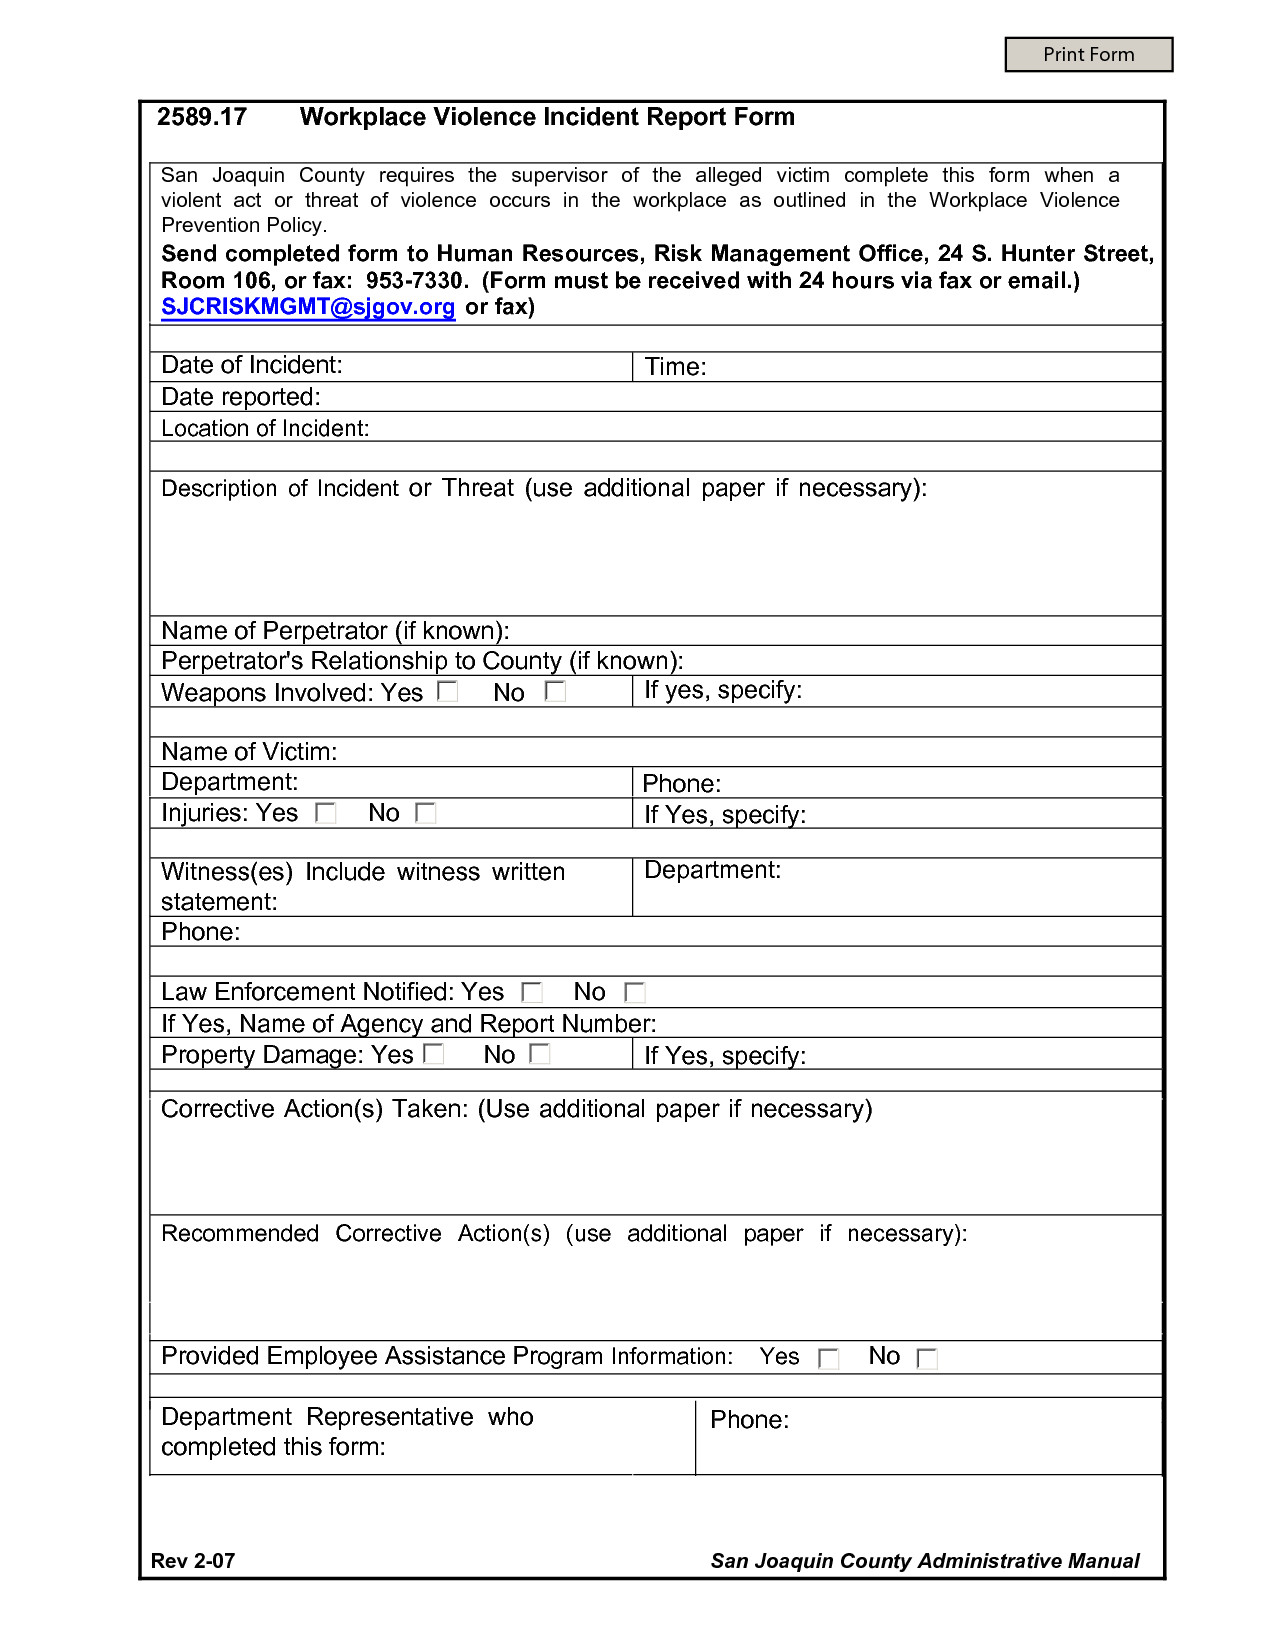 Work Incident Report Template Incident Report Accident at Workplace Custom Paper Sample